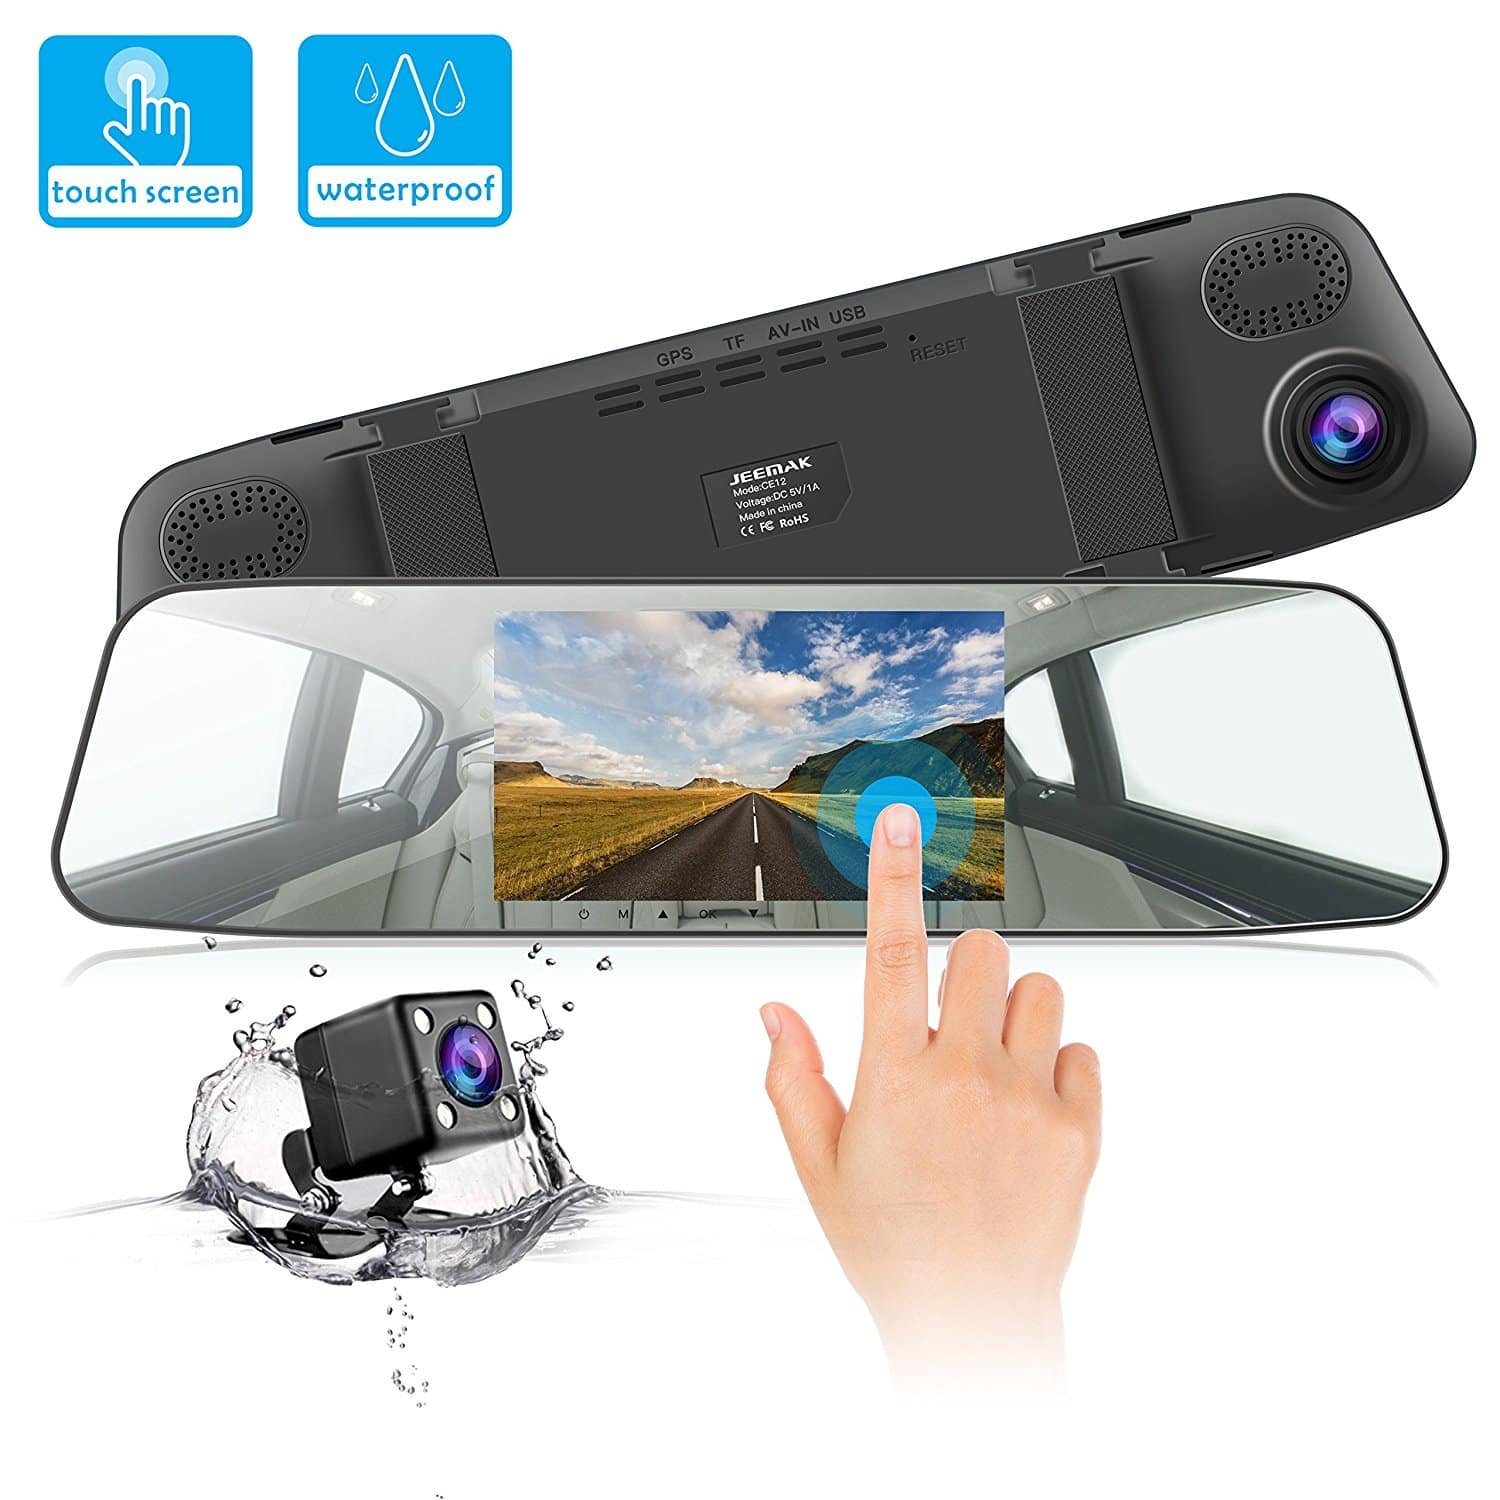 170° Wide Angle, 1080P, IPS Touch Screen, Rearview Dash Camera w continuous recording for $39.99 AC @ Amazon